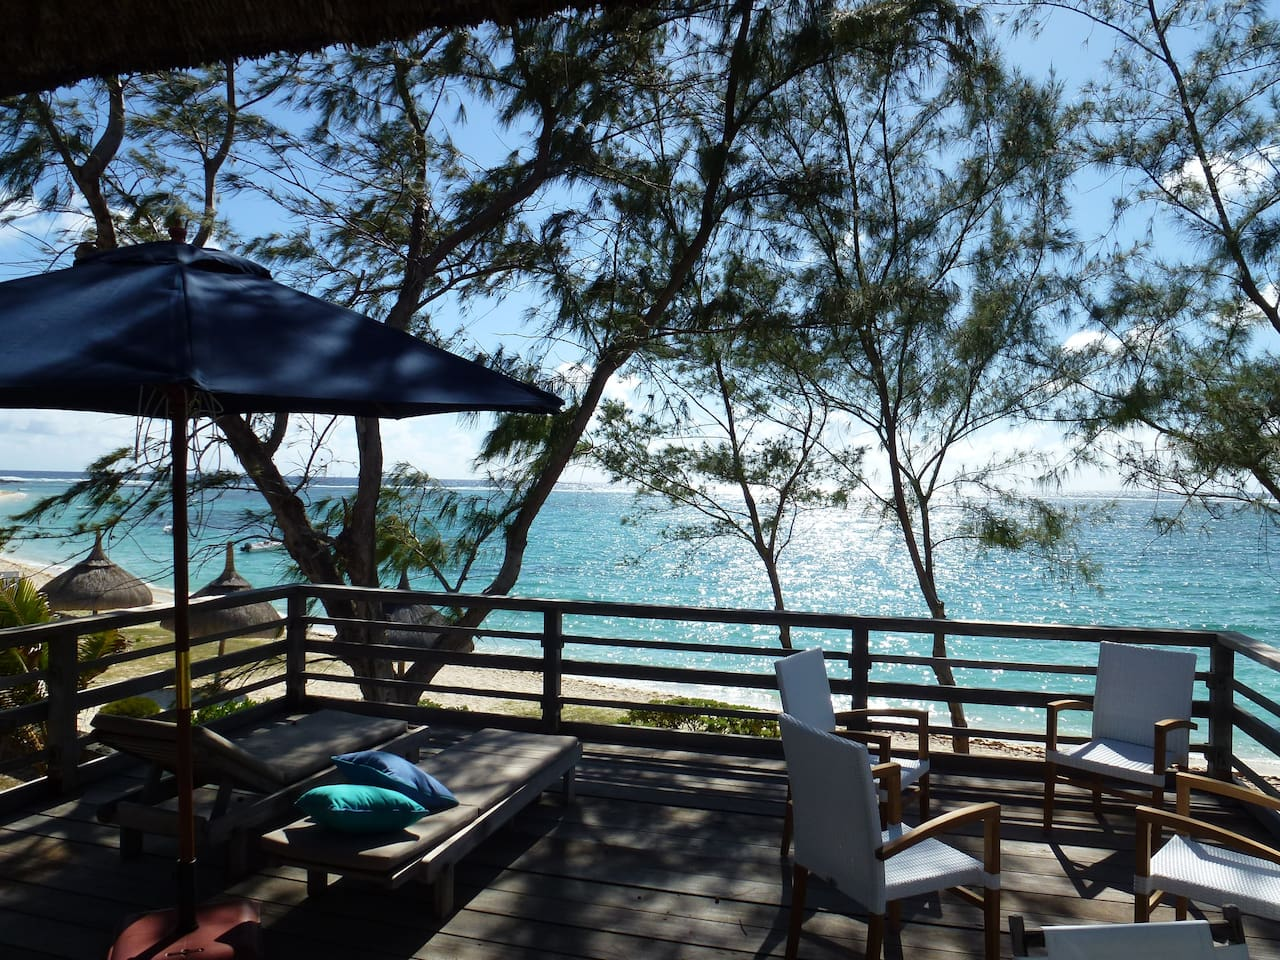 View from the deck overlooking the amazing turquoise lagoon